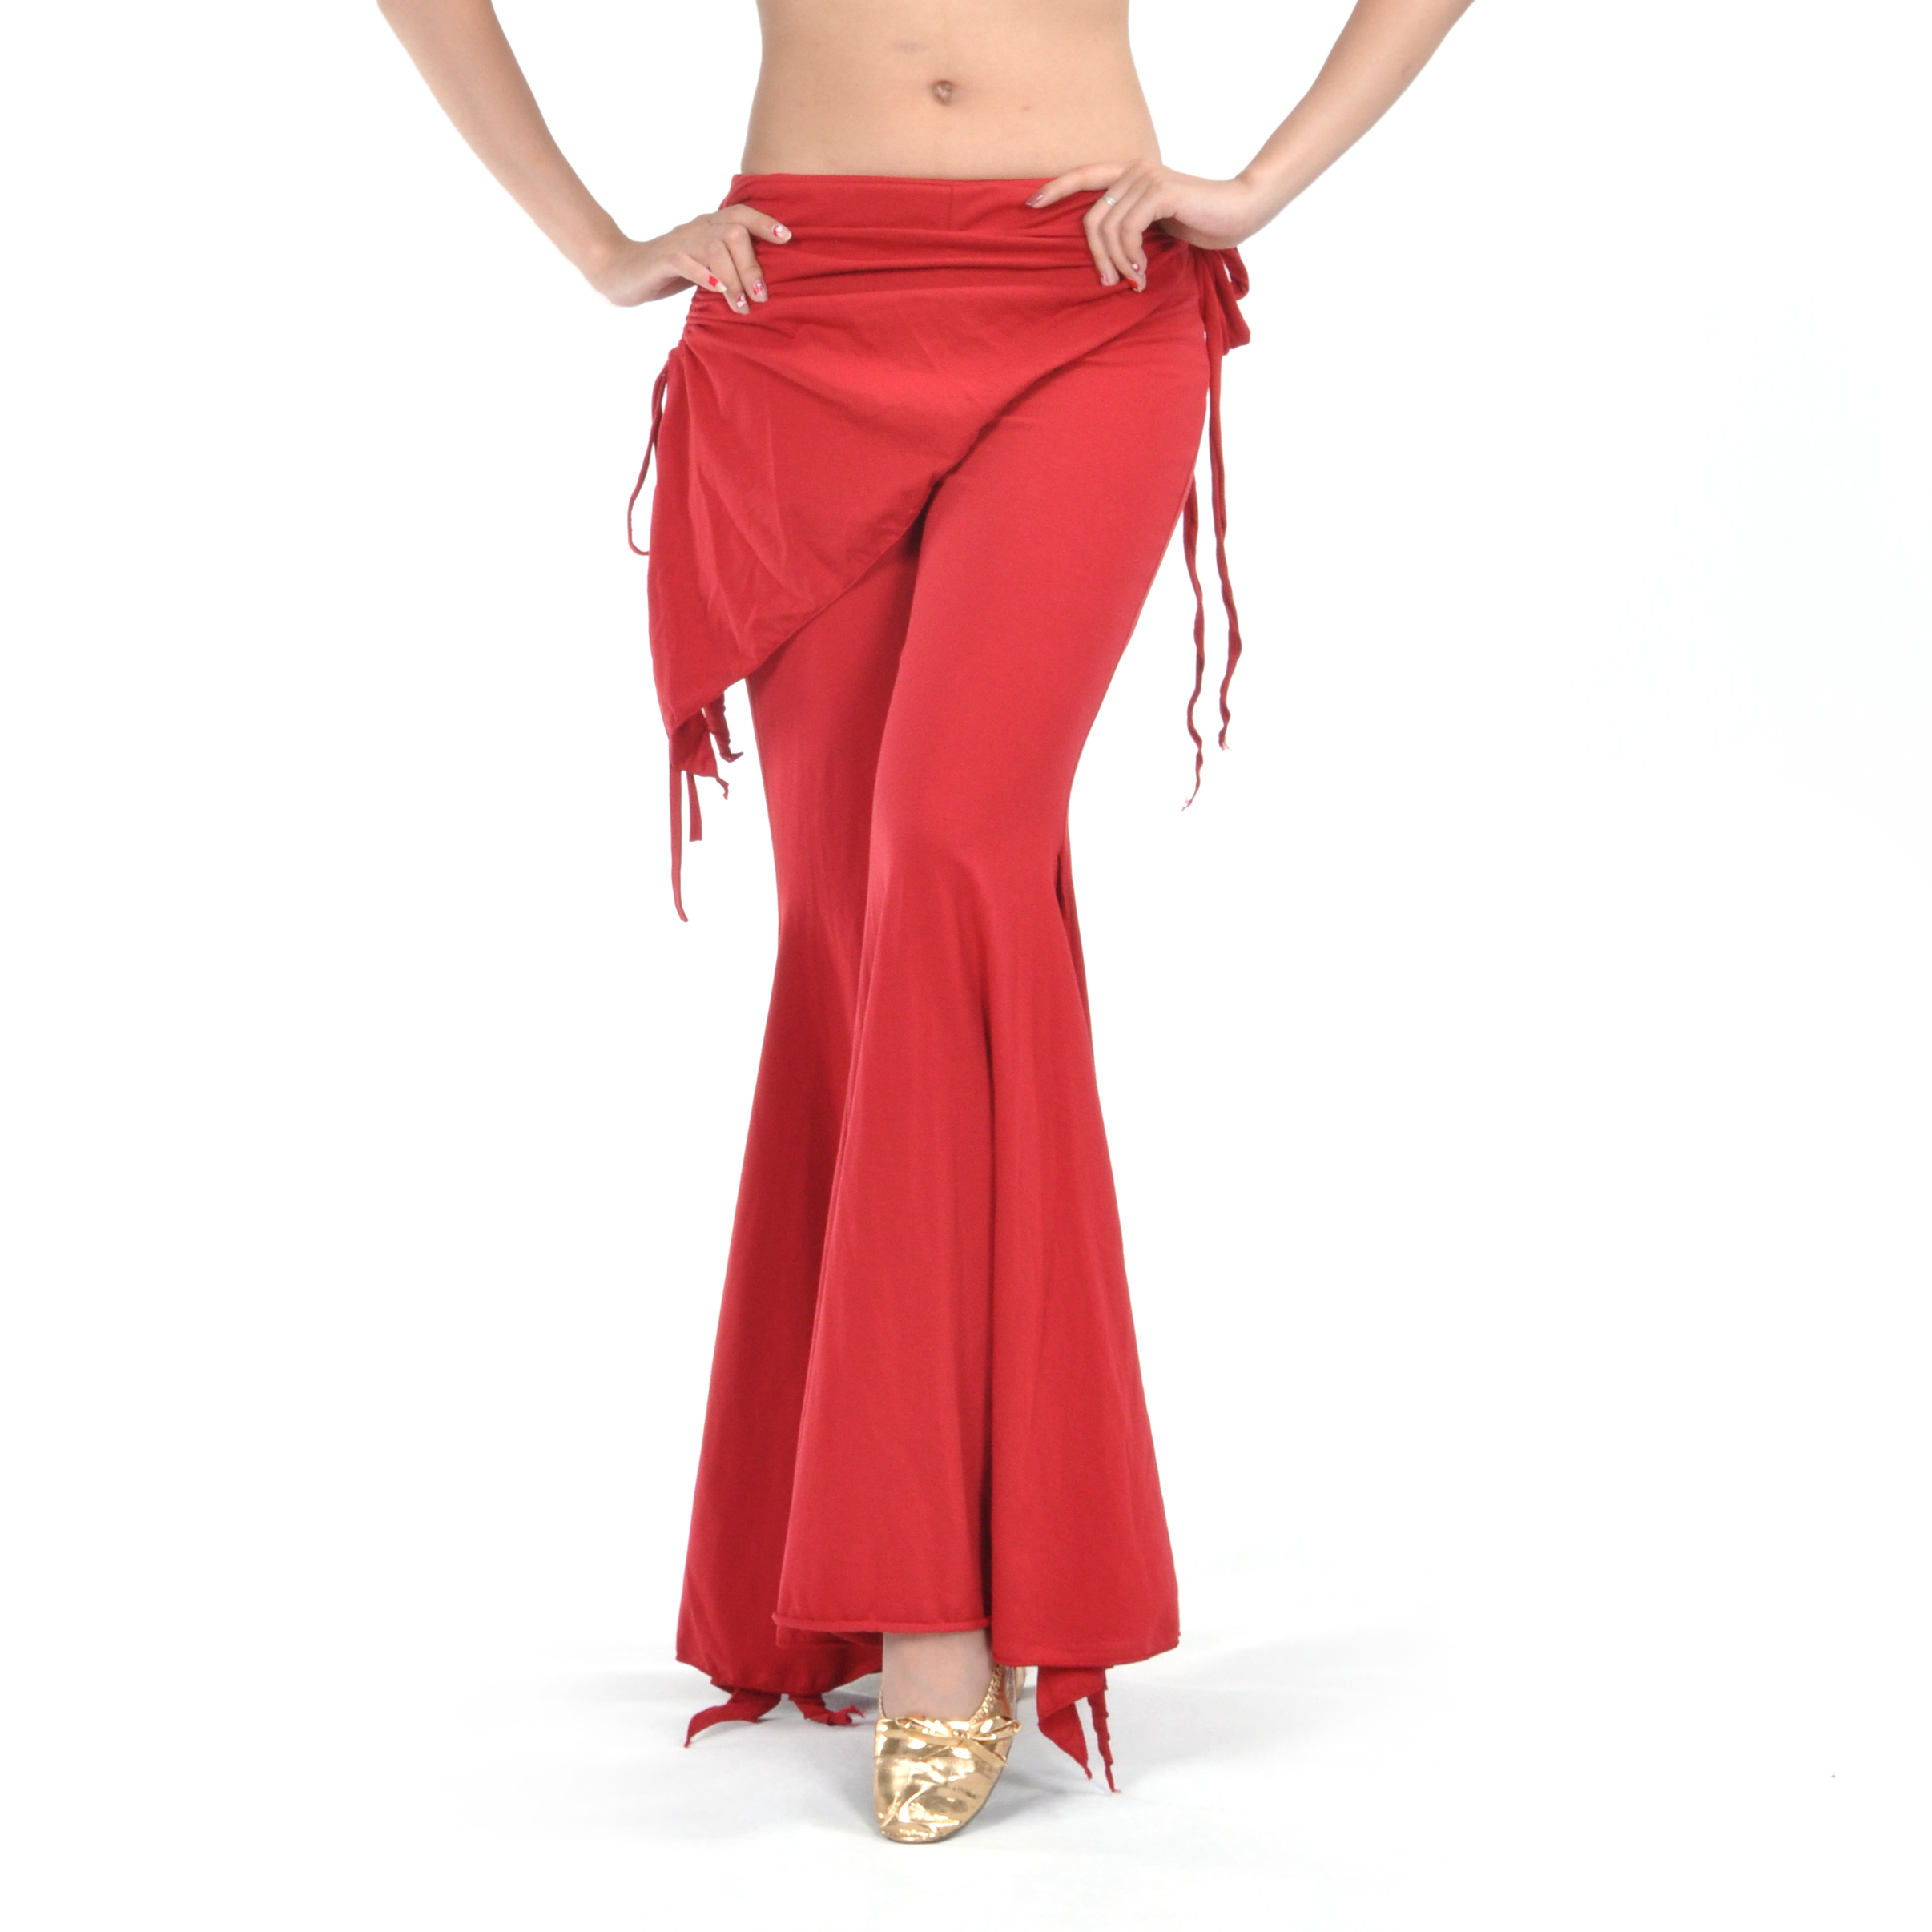 BellyLady Belly Dance Tribal Costume Pants, Yoga Pants, Valentine's Gift Idea